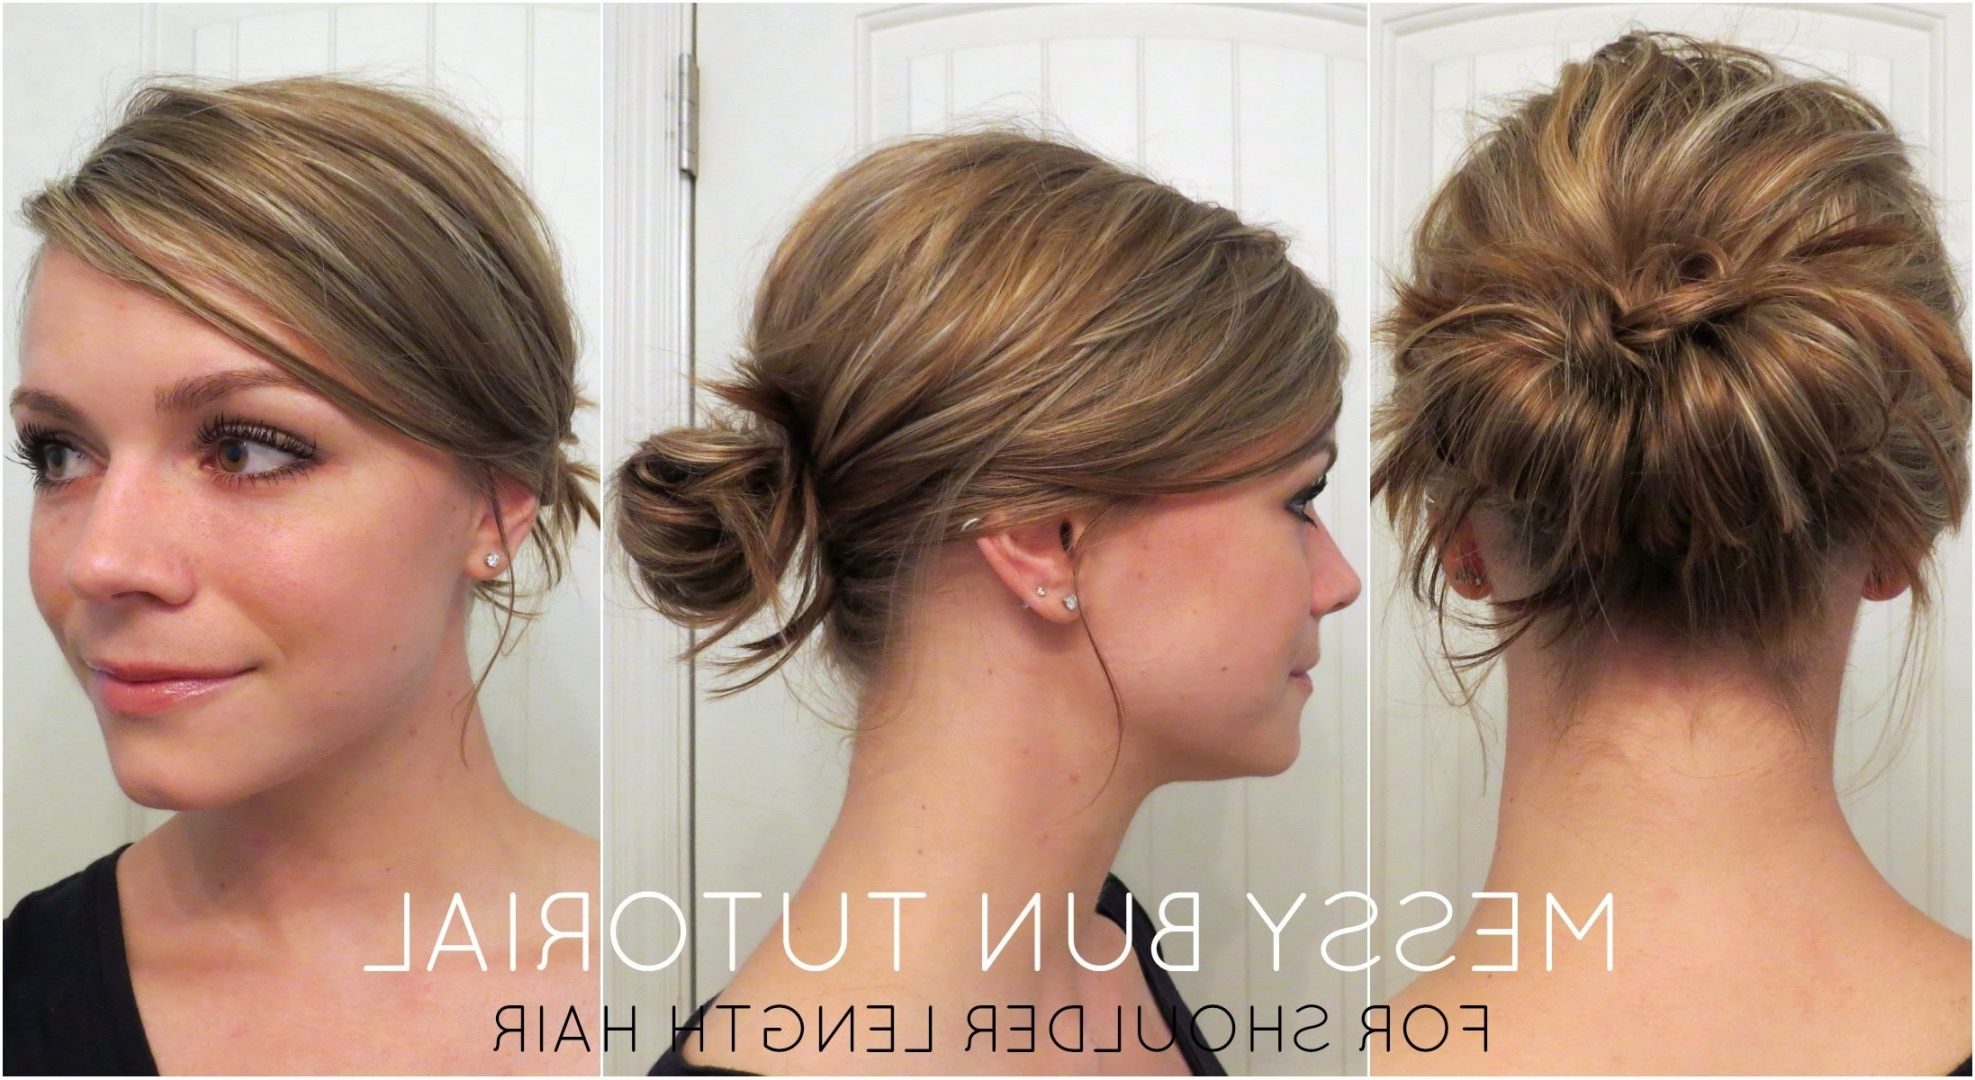 Messy Updos For Medium Hair Quick Updo Hairstyles For Medium Pertaining To Updo Hairstyles For Shoulder Length Hair (View 10 of 15)